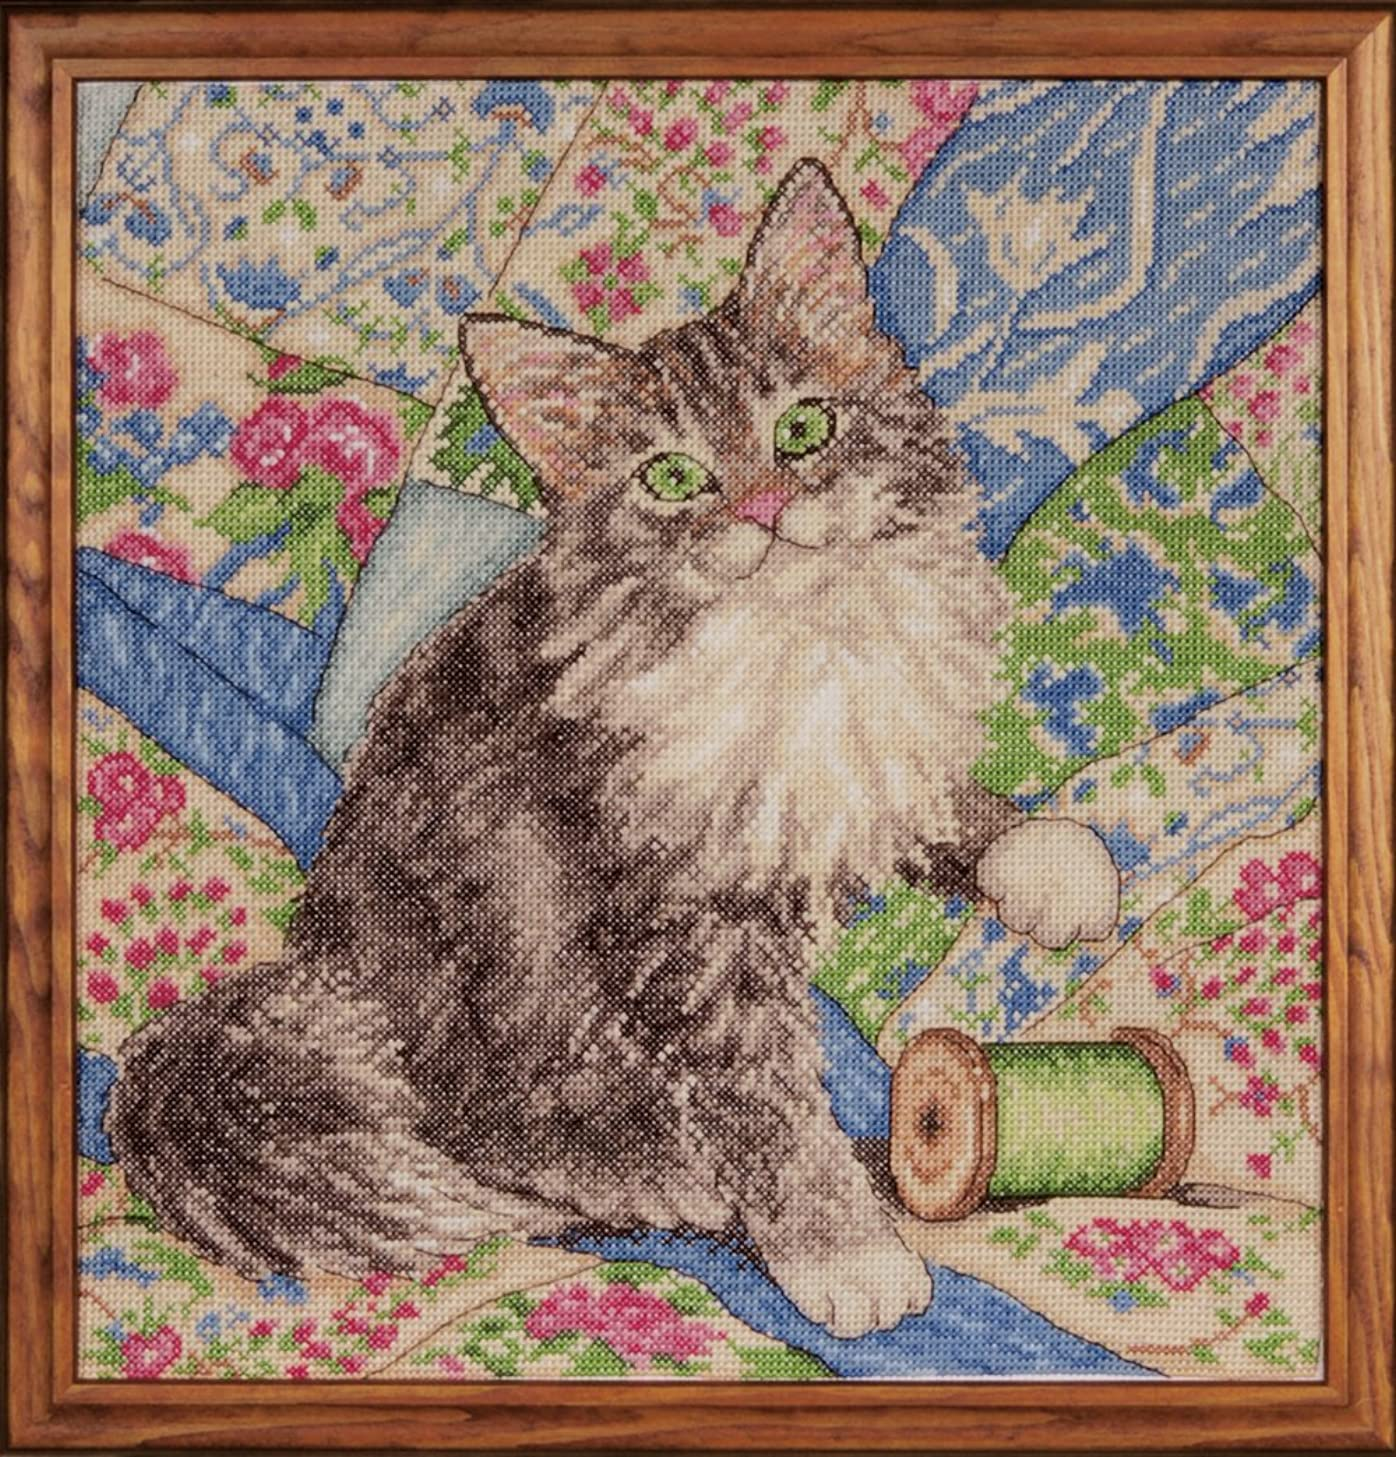 Design Works Crafts Cat on Quilt Counted Cross Stitch Kit, 12 by 12